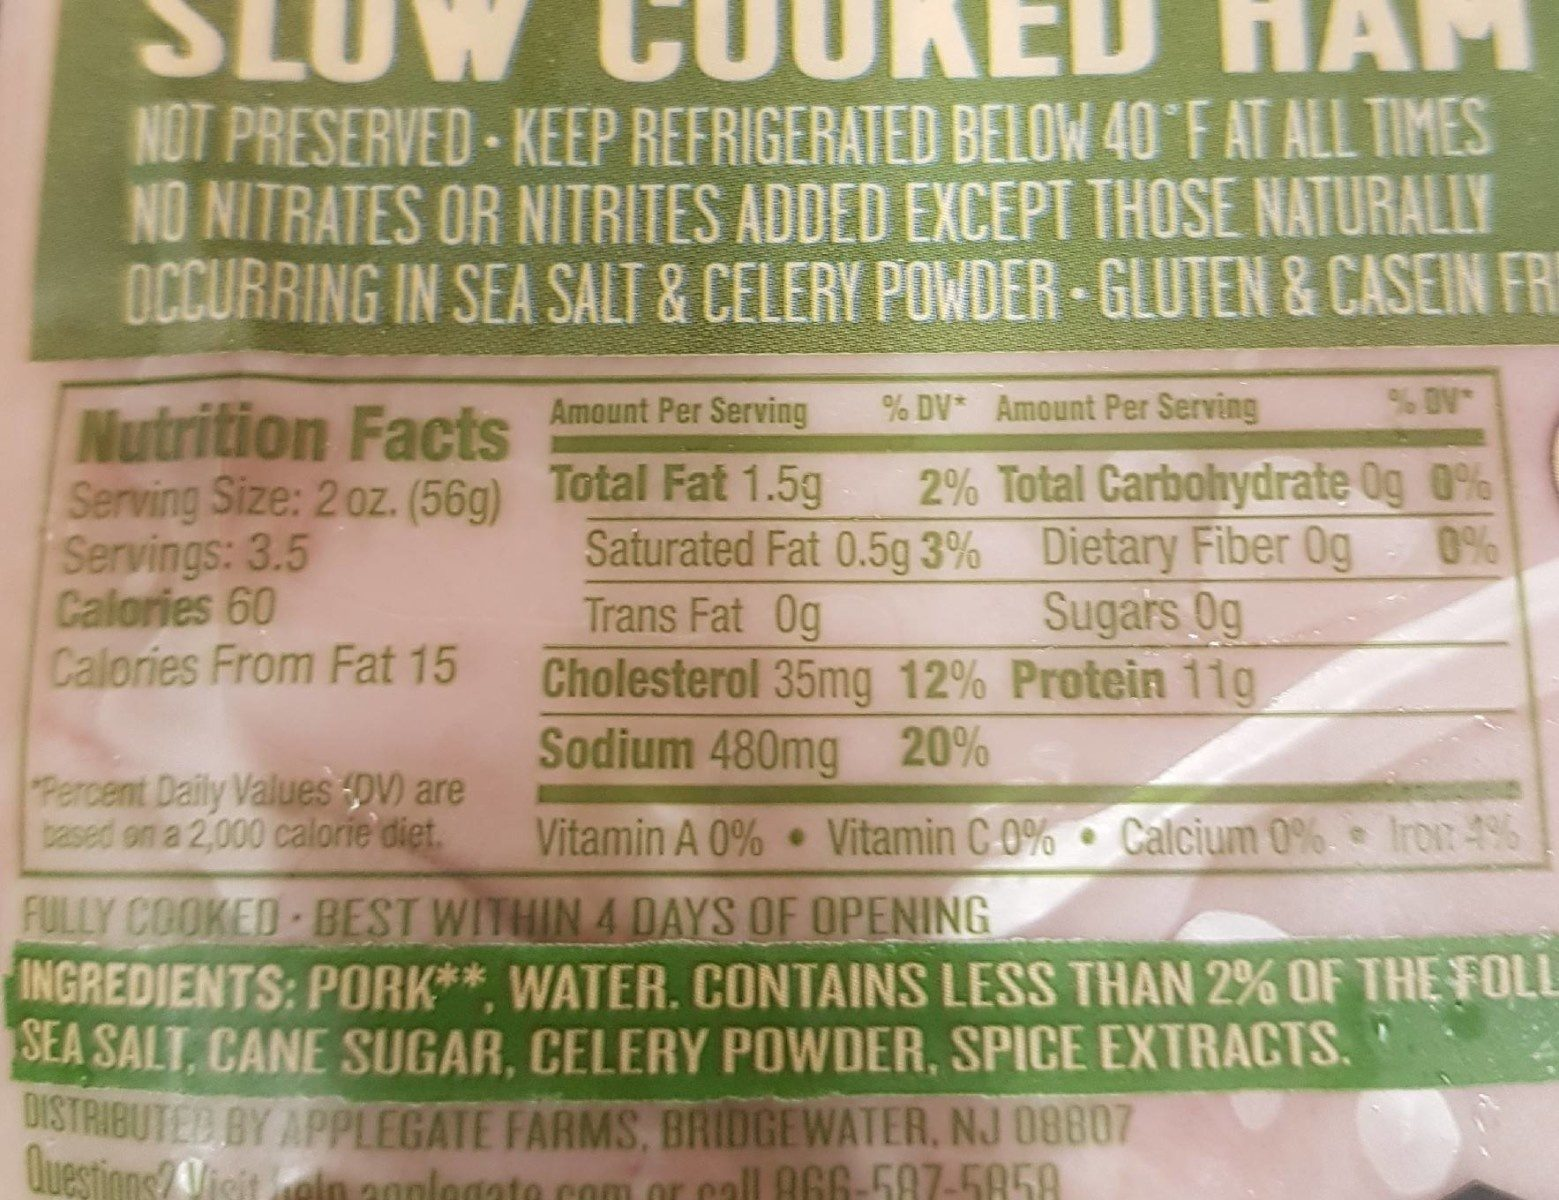 Applegate Naturals Ham Slow Cooked Uncured - Nutrition facts